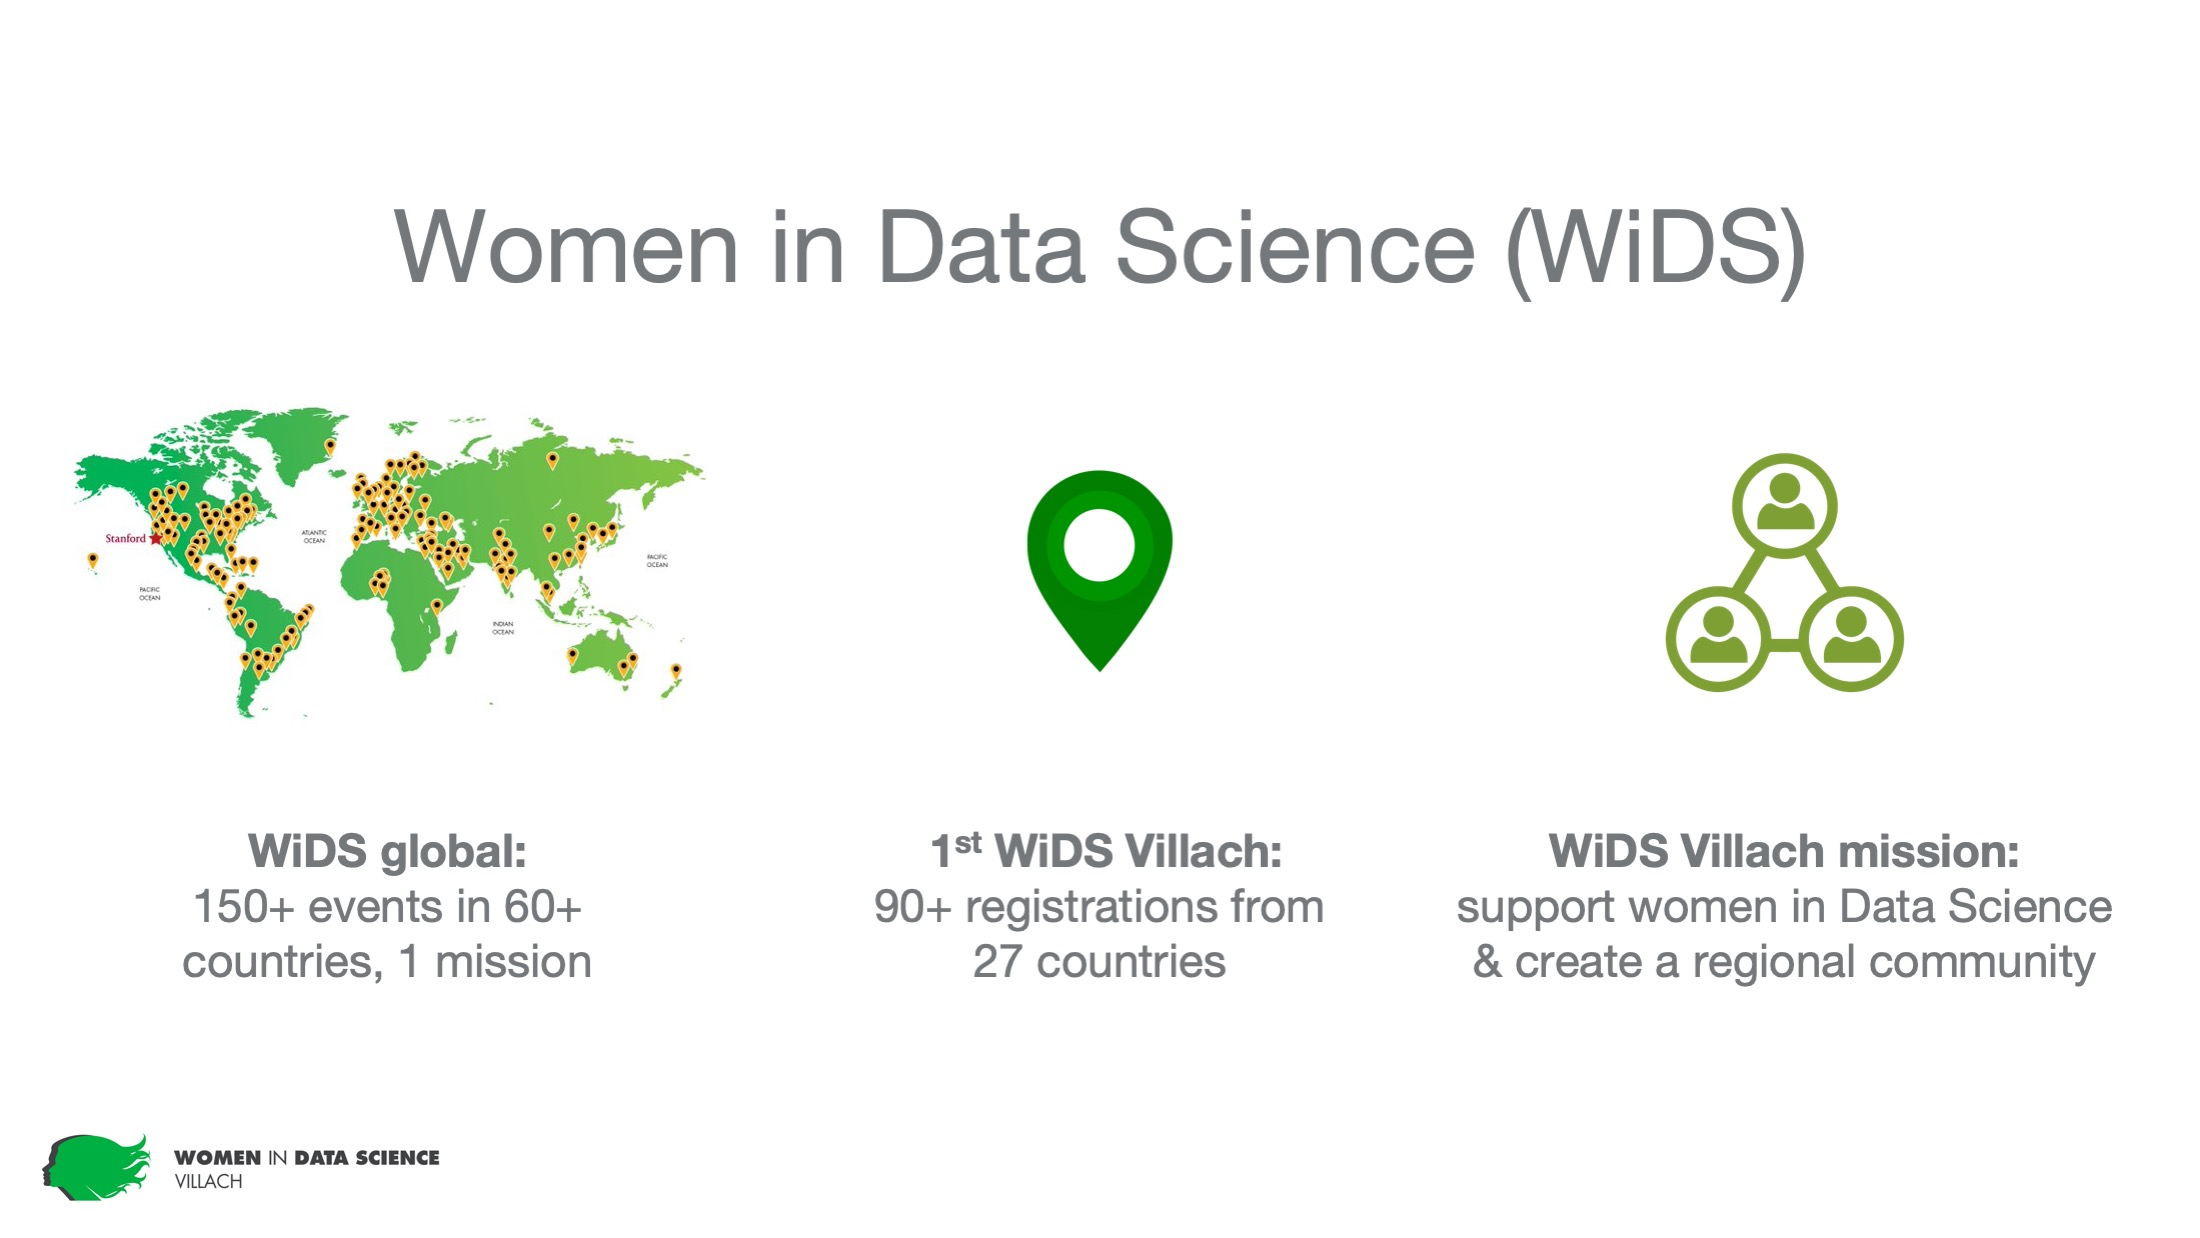 Women in Data Science Villach - WiDS numbers at a glance